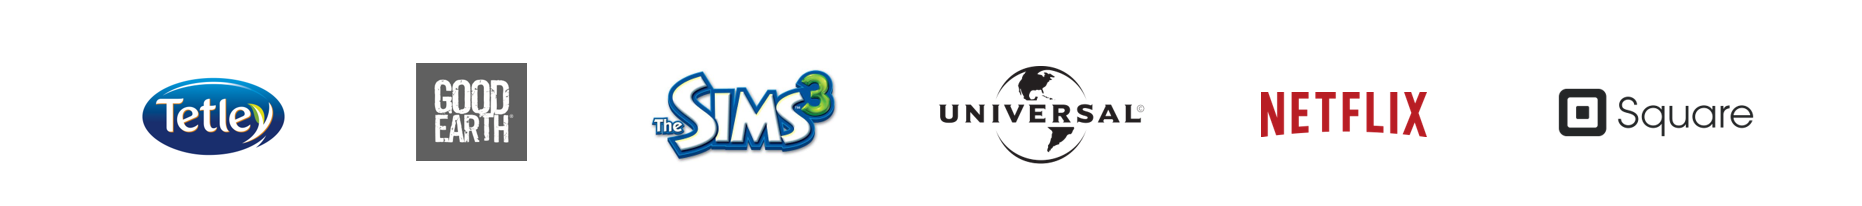 logos for 4wk OA.png